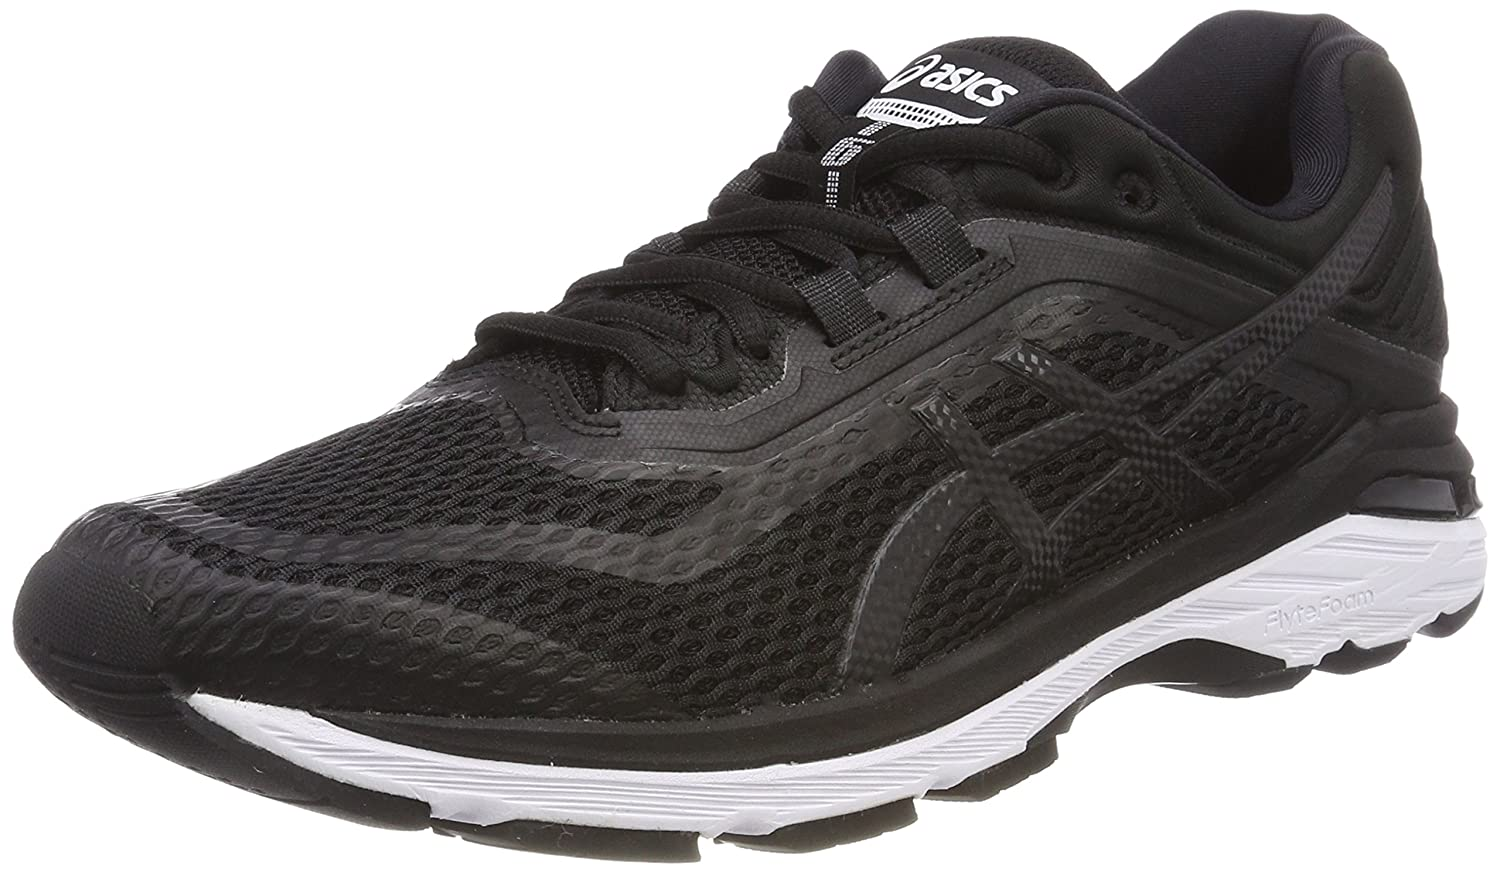 64527a6c7be5 ASICS Women s s Gt-2000 6 Running Shoes  Amazon.co.uk  Shoes   Bags